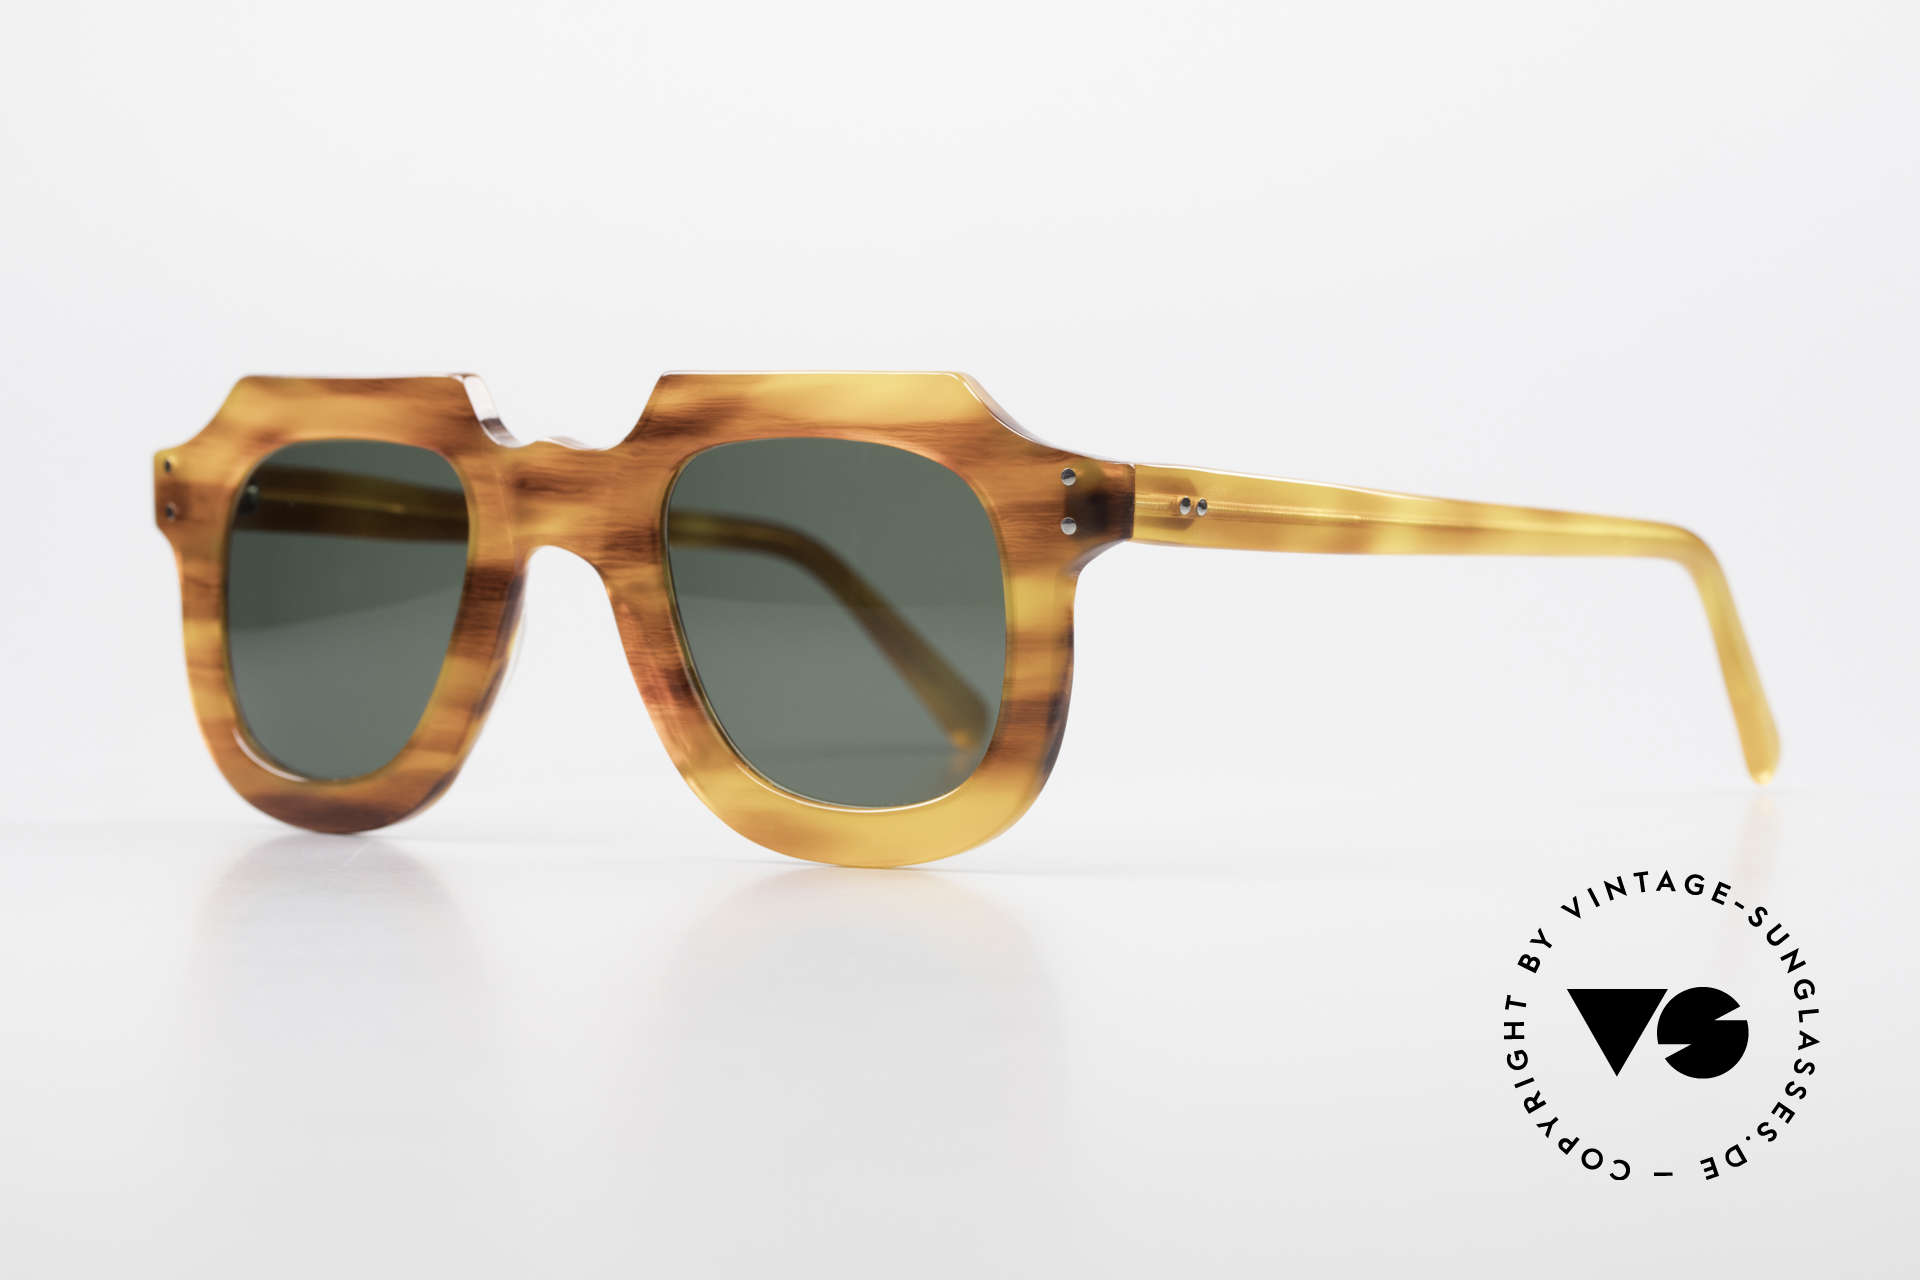 Lesca Classic 4mm 50 Years Old Sunglasses, made in France; WITHOUT any MARKS or inscriptions, Made for Men